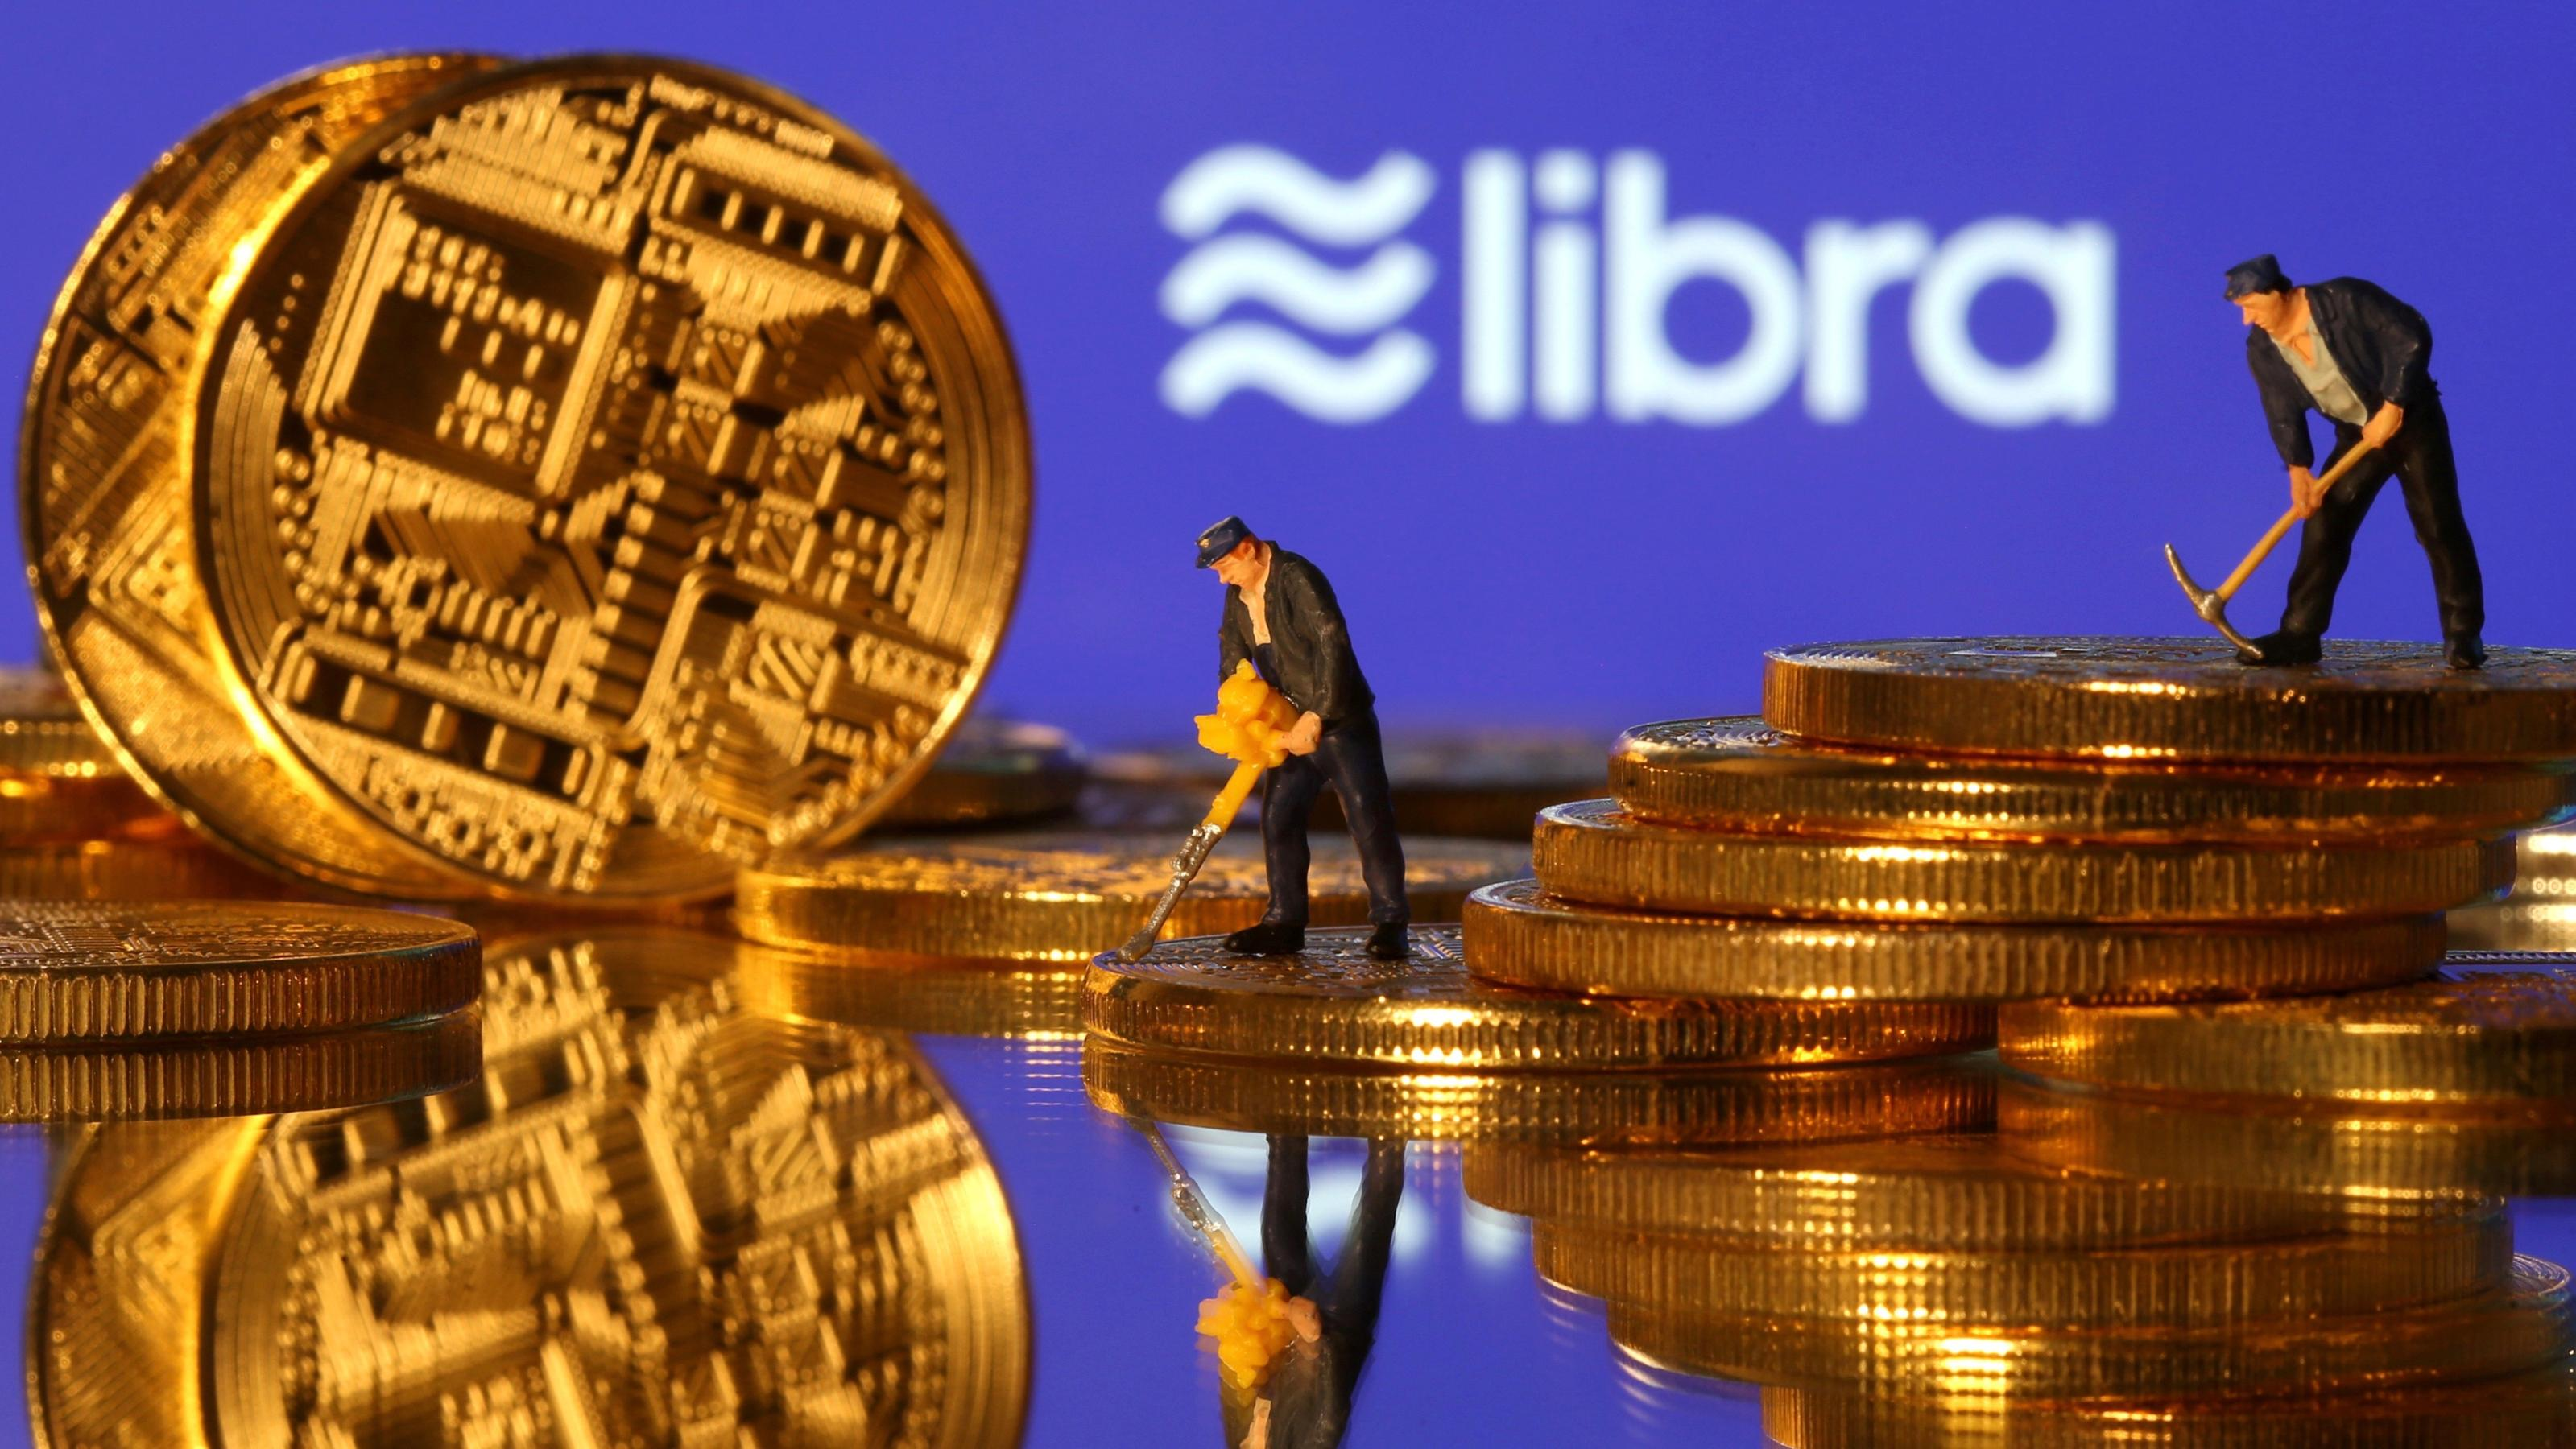 Facebook's Libra is spurring central banks' interest in issuing cryptocurrency